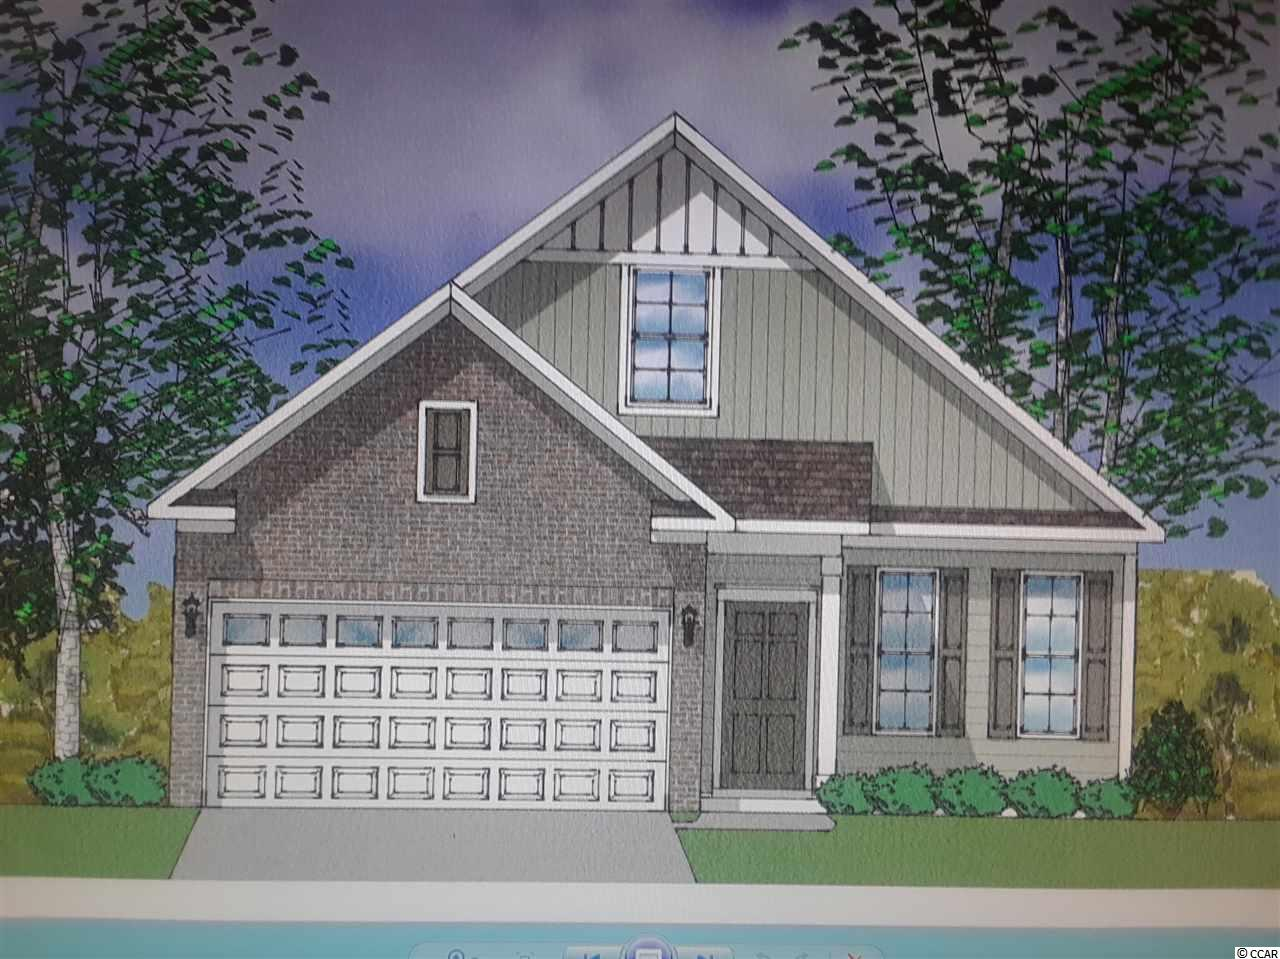 This home is to-be-built on a standard home site.  Options, upgrades and lot premiums will increase the price.  Pictures are from a similar home.  See sales representative for specific details and features in Heron Lake.  Great opportunity to get in on our remaining home sites! Only 46 homes will be built, and lake home sites have beautiful views of the 20+ acre lake! Incentives for DESIGN CENTER, plus closing cost assistance upon signed contract - please contact listing agent for details.  The Jasmine starts with 2 bed/2.5 baths, 2 car garage, with option for a 3rd bedroom and 3rd bath is perfect for the first time home buyer, a 2nd vacation home, or those looking to downsize their lifestyle!  The very spacious family room and kitchen areas provides the feeling on a larger home, with plenty of cabinet and pantry space! Buyers may personalize their home with numerous structural and design options.  Search for Mungo Homes on the web to learn about hauSMART and how our homes are built to be Healthier, Affordable, and Energy Efficient, with YOU in mind. Building with Mungo Homes is the SMART choice!!  Too numerous to list but some included features are: Natural Gas; Granite Counter-tops; Upgraded Cabinetry with Crown Molding; Framed mirrors in all baths; Stainless Steel Appliances; Recessed Lighting in kitchen; Low VOC Carpet, Cabinets and Paint; R-38 Attic Insulation (exceeds building code!) and Radiant Roof Sheathing; Full Yard Landscaping with Irrigation; Tankless Hot Water;  2-speaker sound system with Music Port; 6 Cable/Phone Jacks; Ceiling fan in Family room; Light fixtures in ALL rooms and much MORE!! Not quite the right home? We offer 6 other home plans between 1,342 - 1965 Htd Sq Ft, with up to 4 bedrooms.